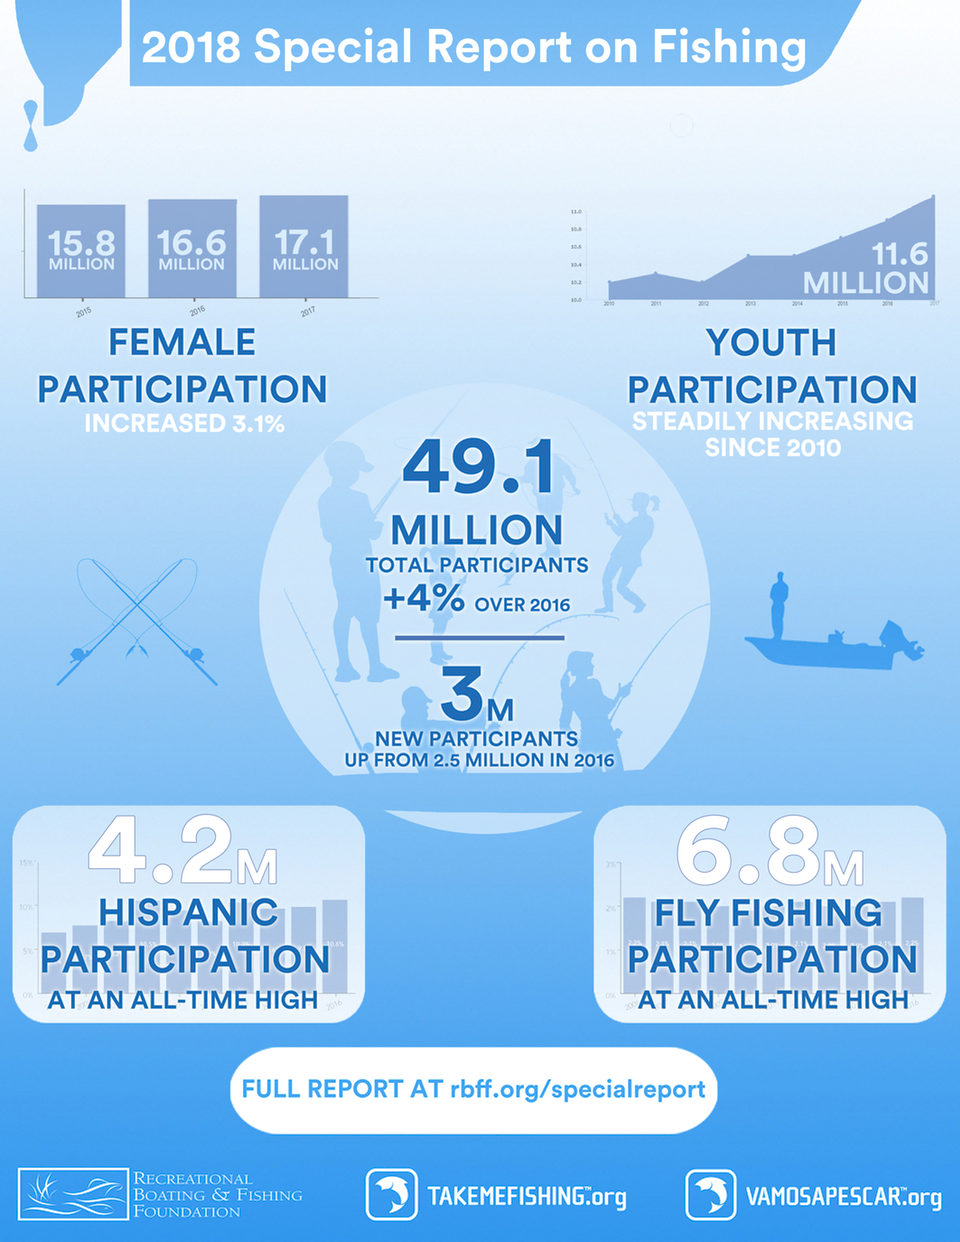 2018 Special Report on Fishing Infographic